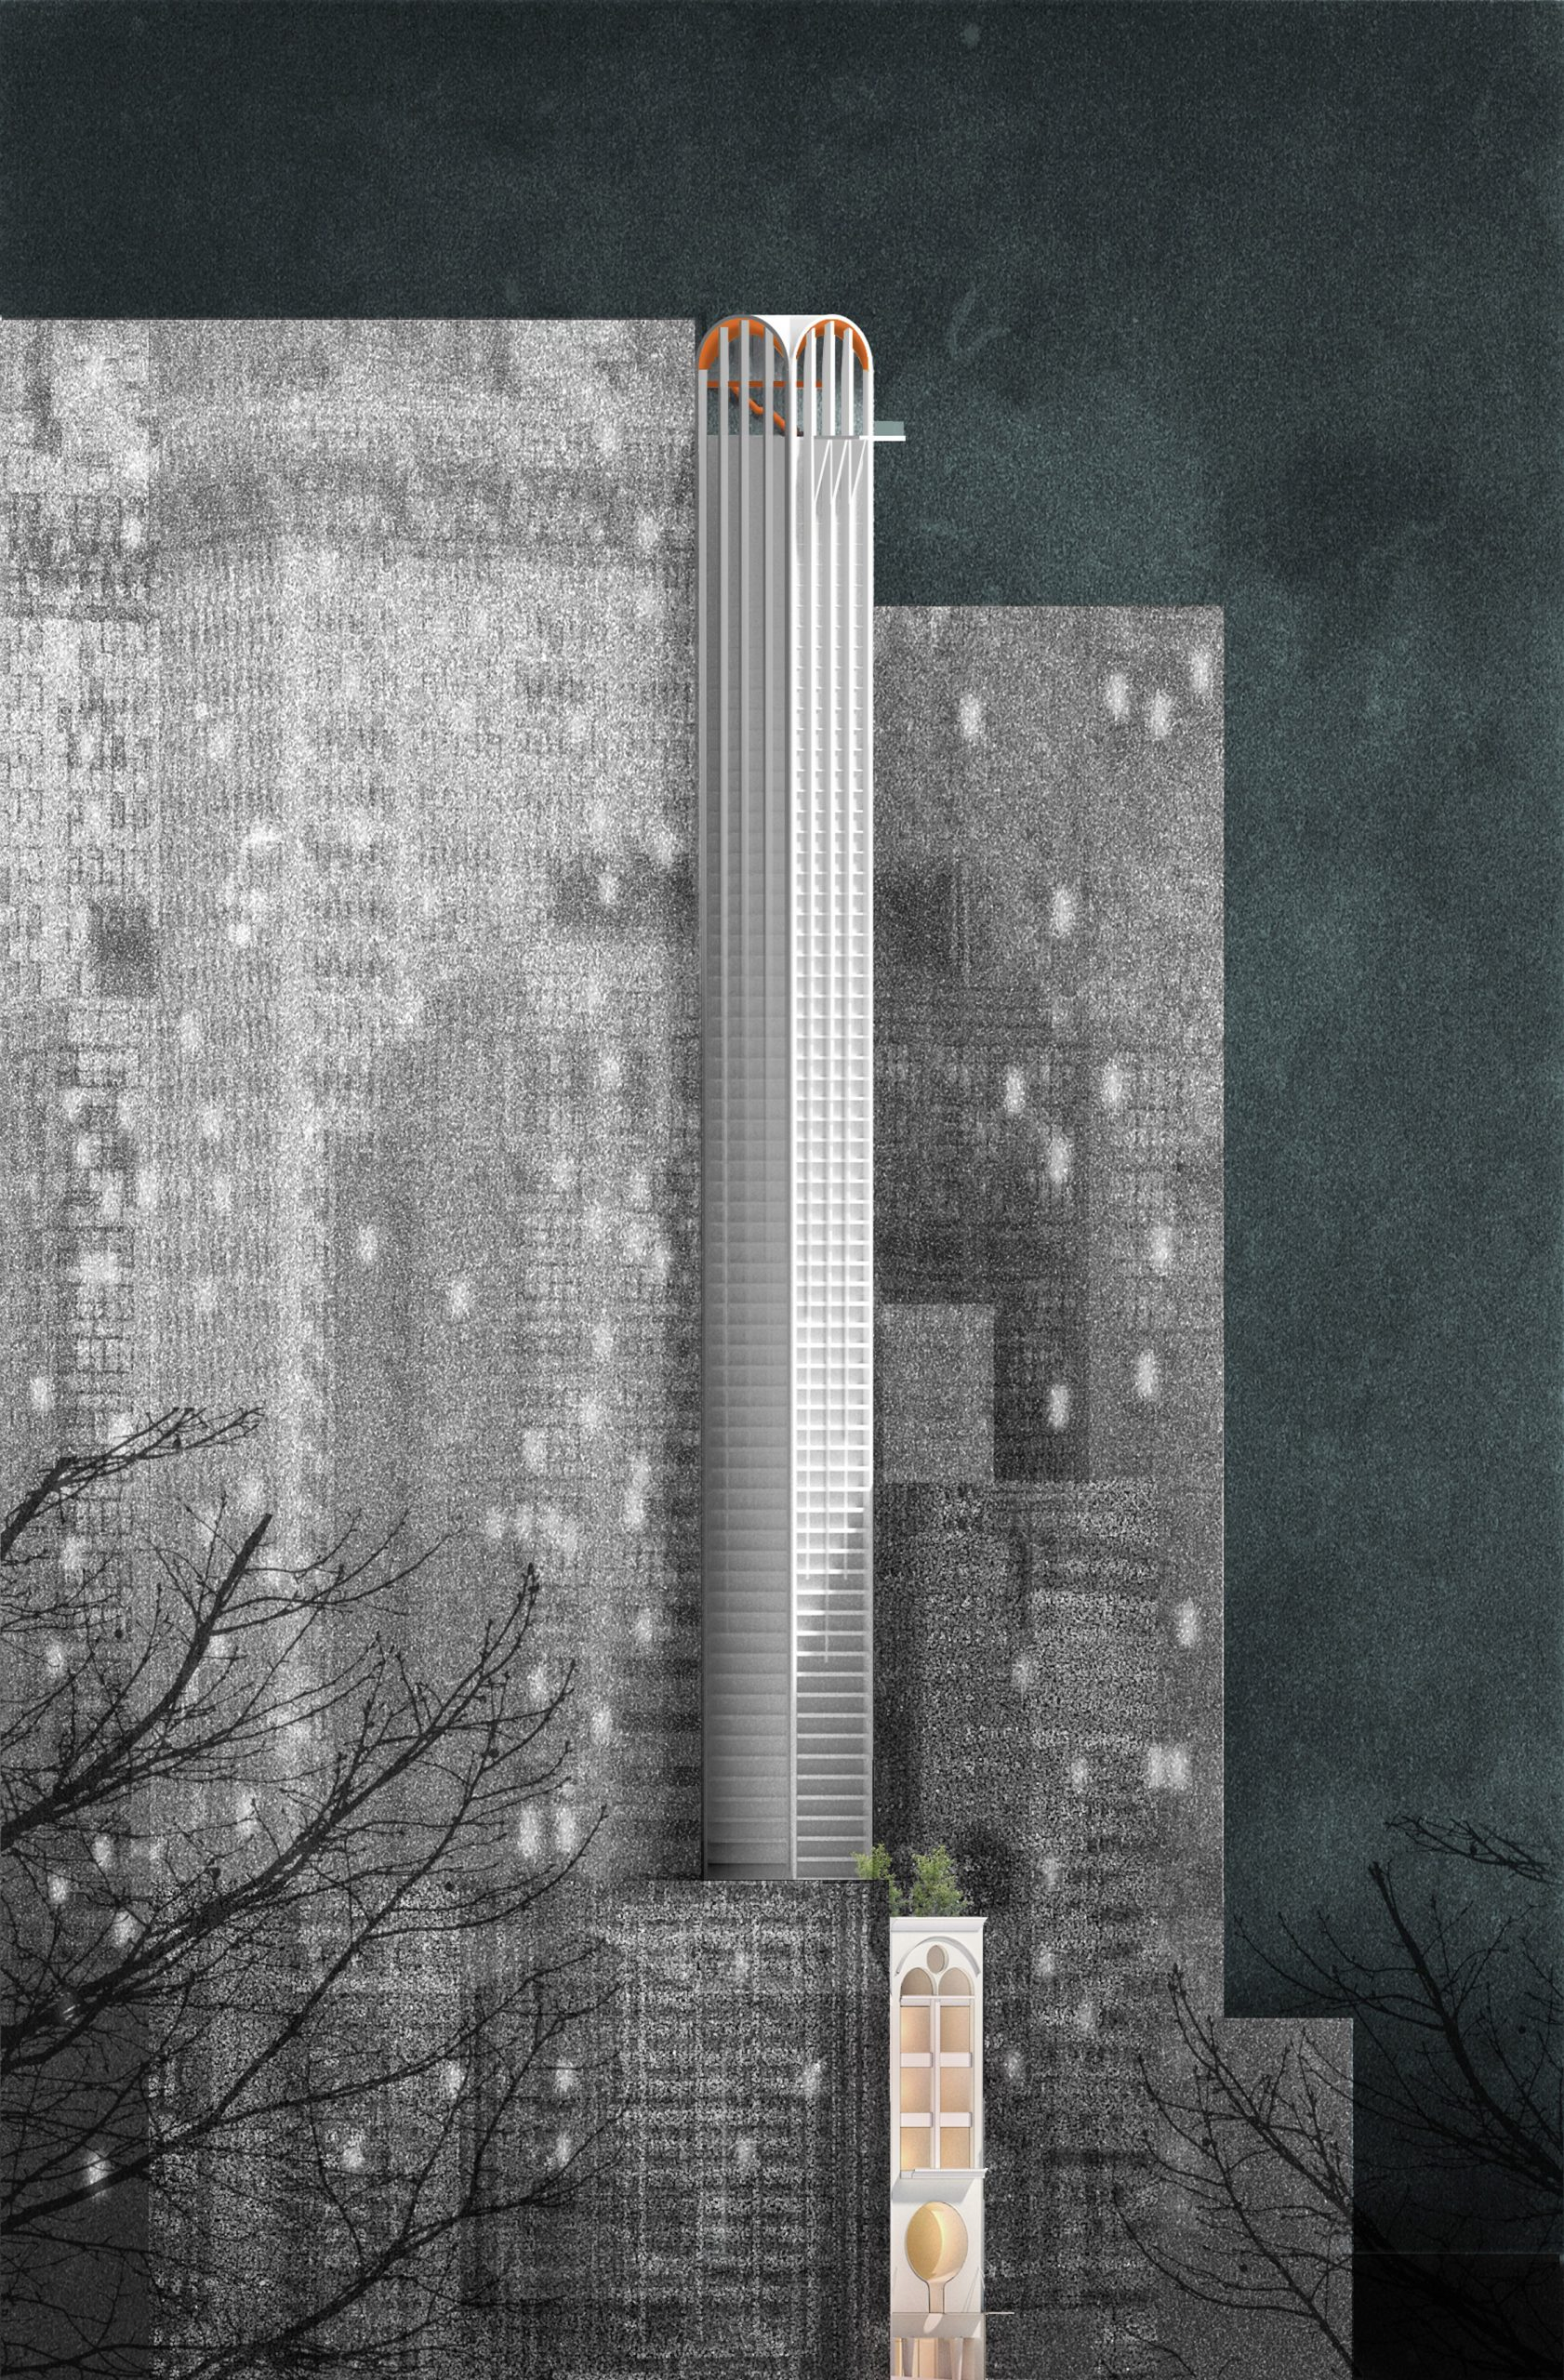 Sketch of Pencil Tower Hotelskyscraper